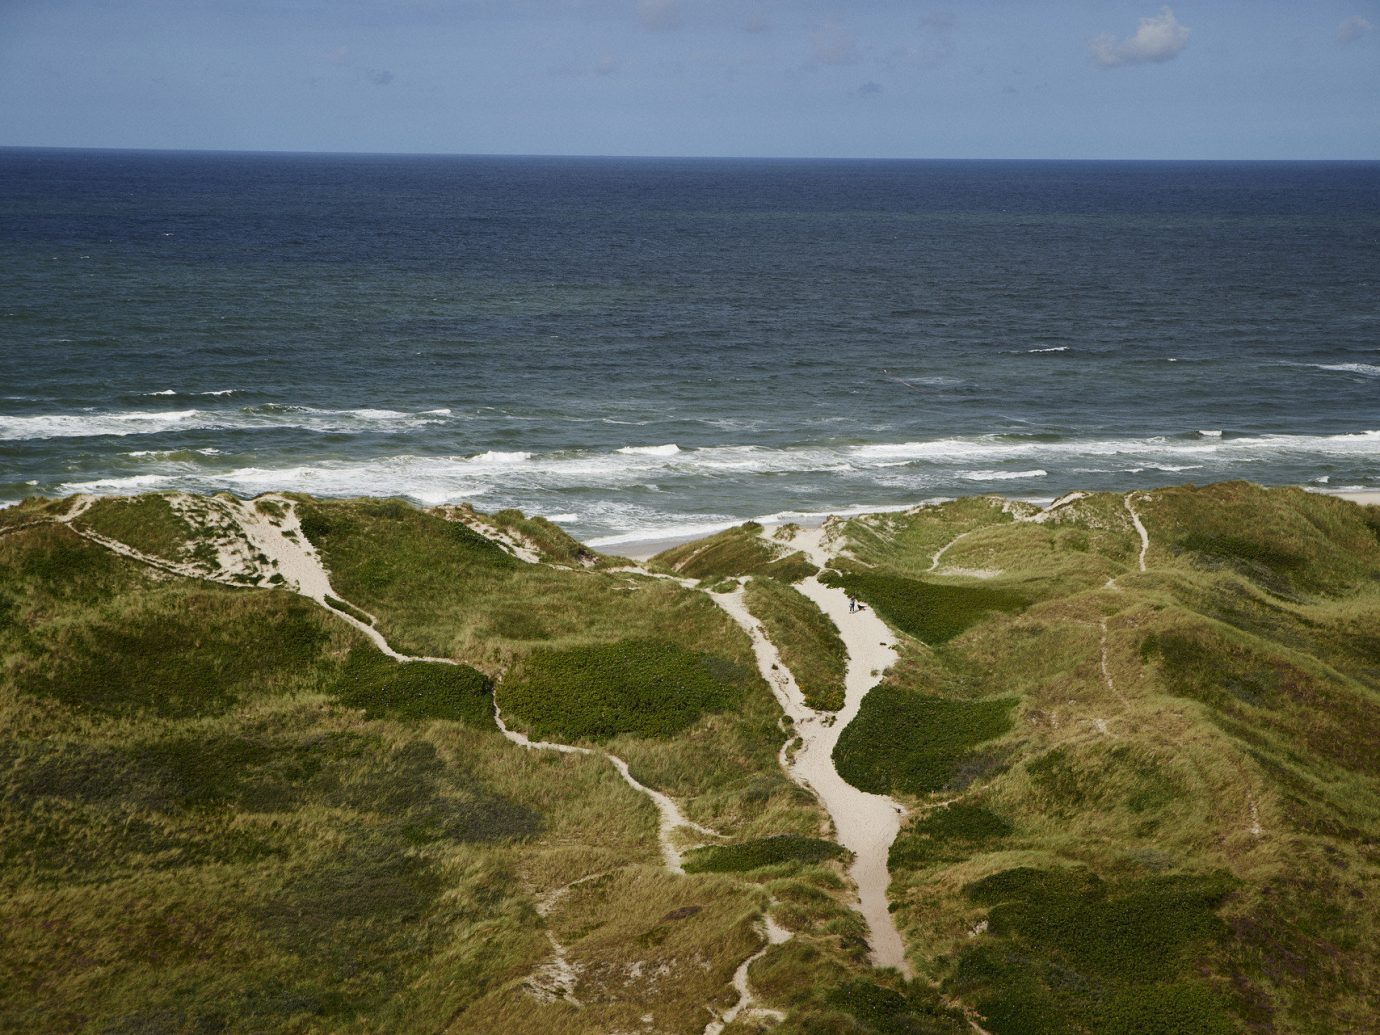 Beach dunes grass Ocean ocean view path sand Travel Tips outdoor water Coast shore Sea body of water Nature cliff horizon wind wave wave terrain cape rock bay wind cove aerial photography